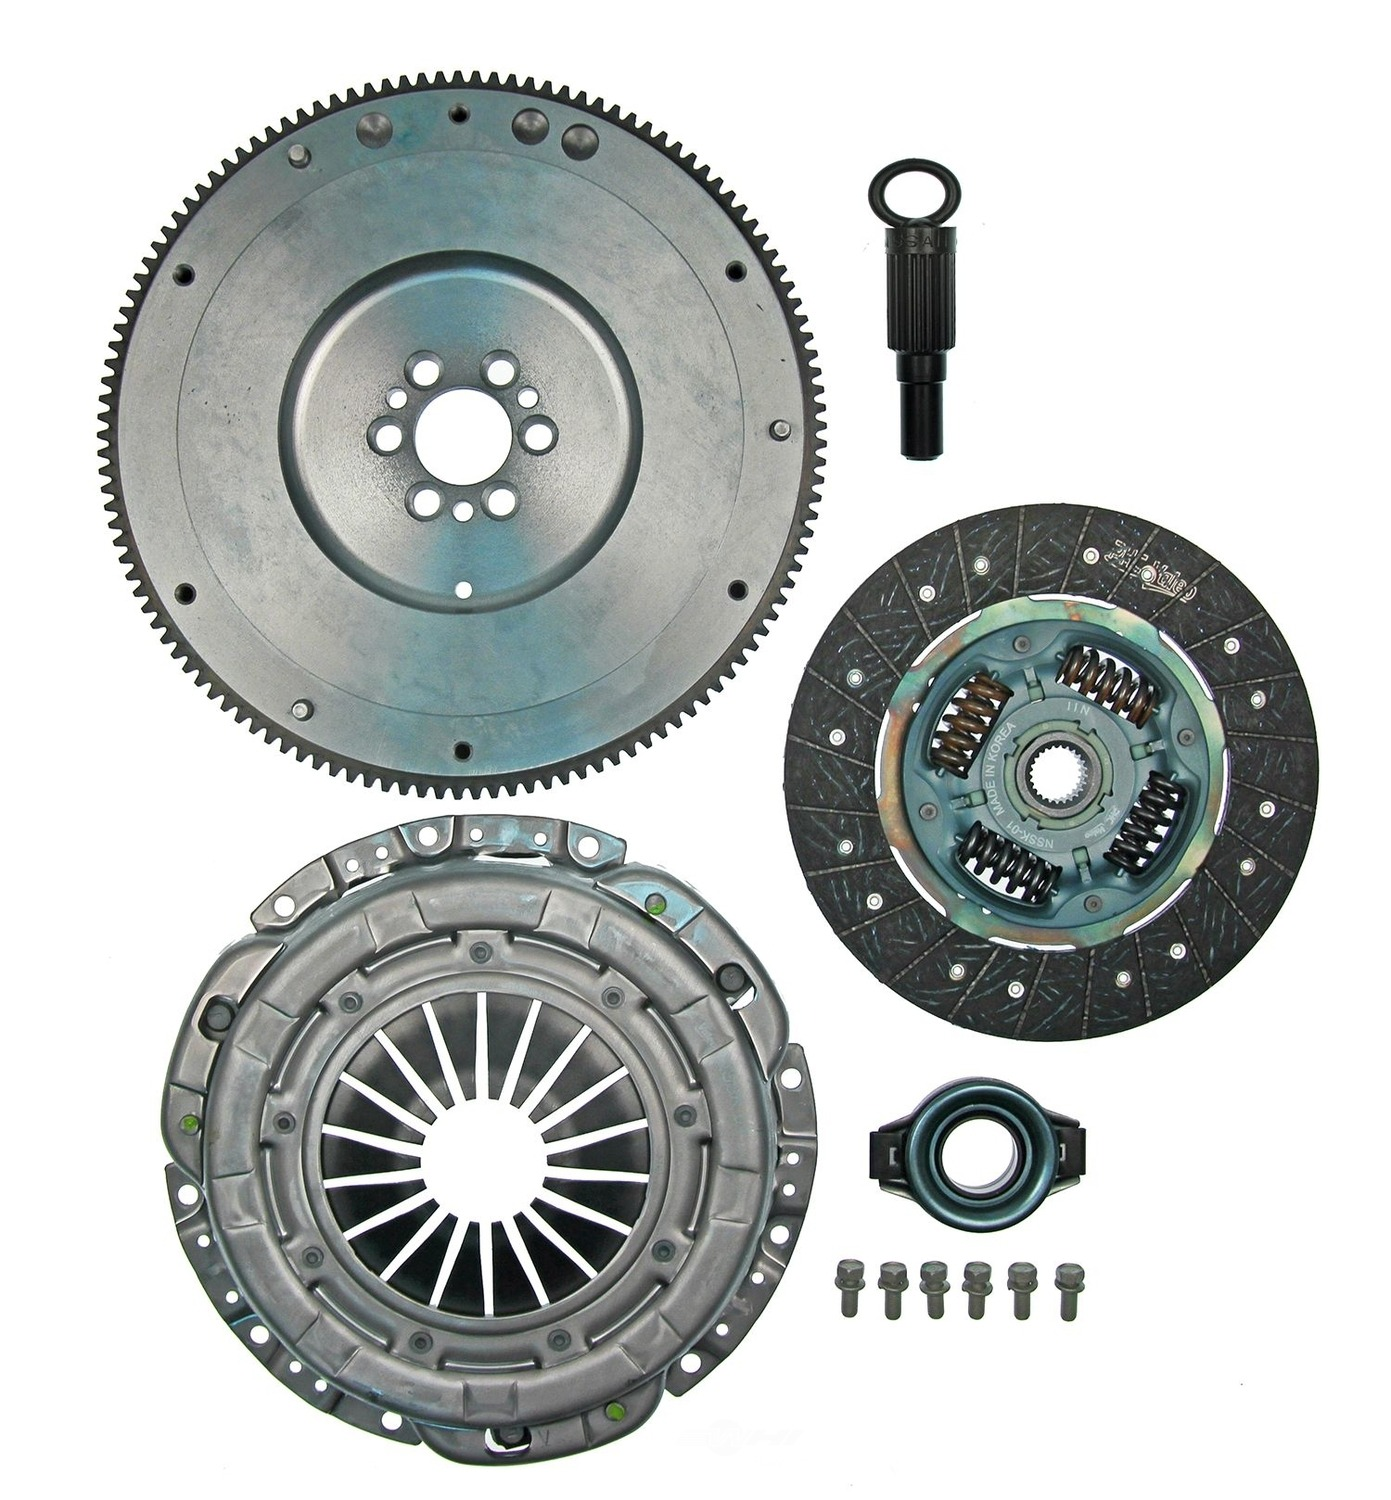 RHINOPAC/AMS - Premium Clutch Kit - RHO 06-074